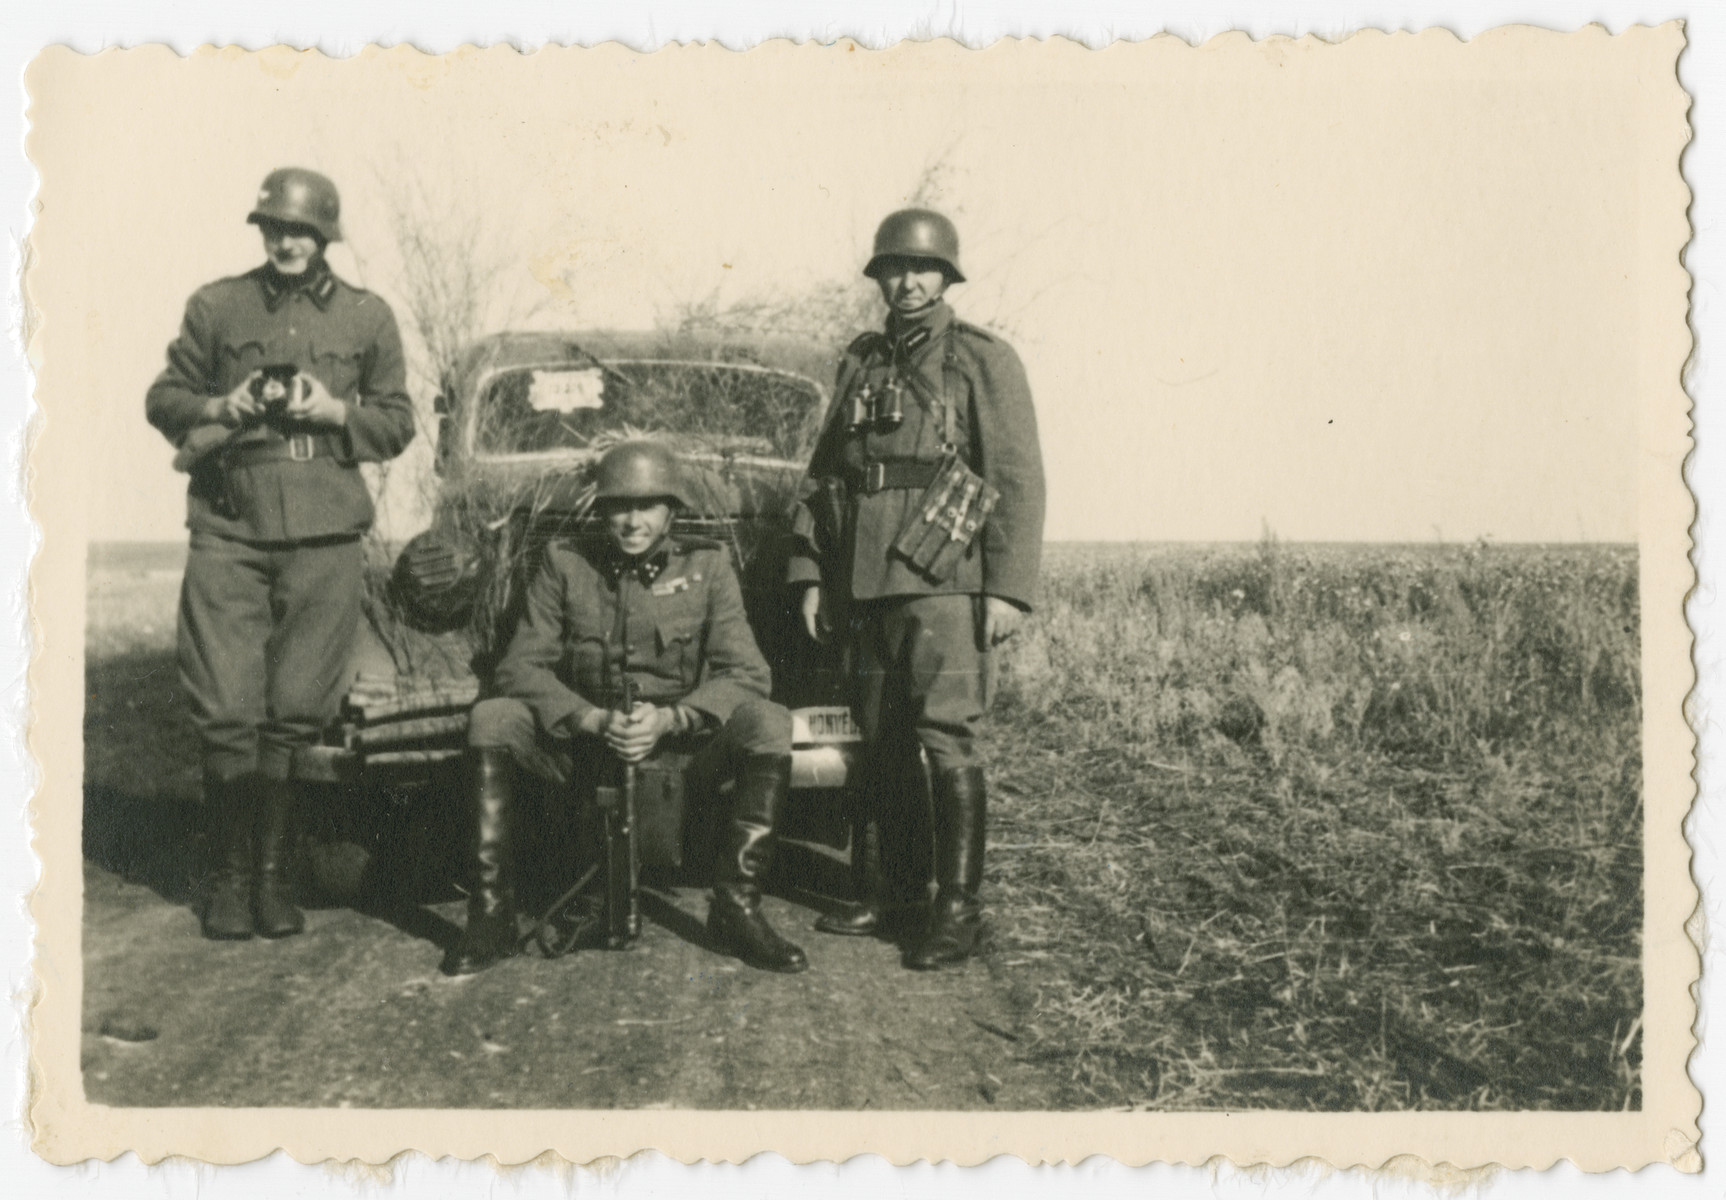 Karoly Deme, center, poses with two fellow soldiers before a camouflaged vehicle.